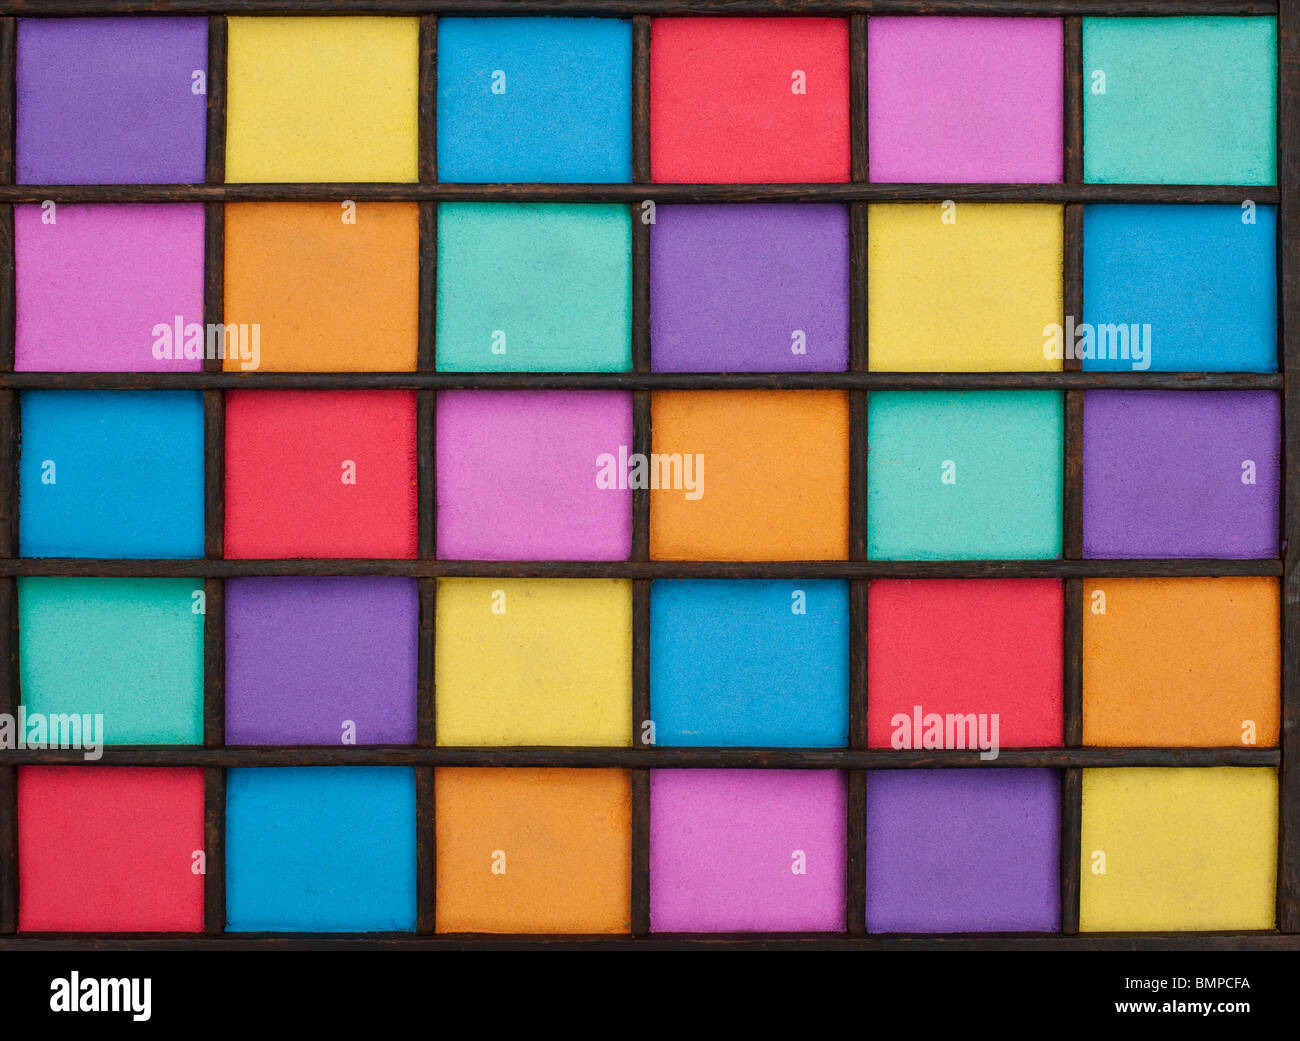 Multicoloured sand pattern in a wooden grid - Stock Image